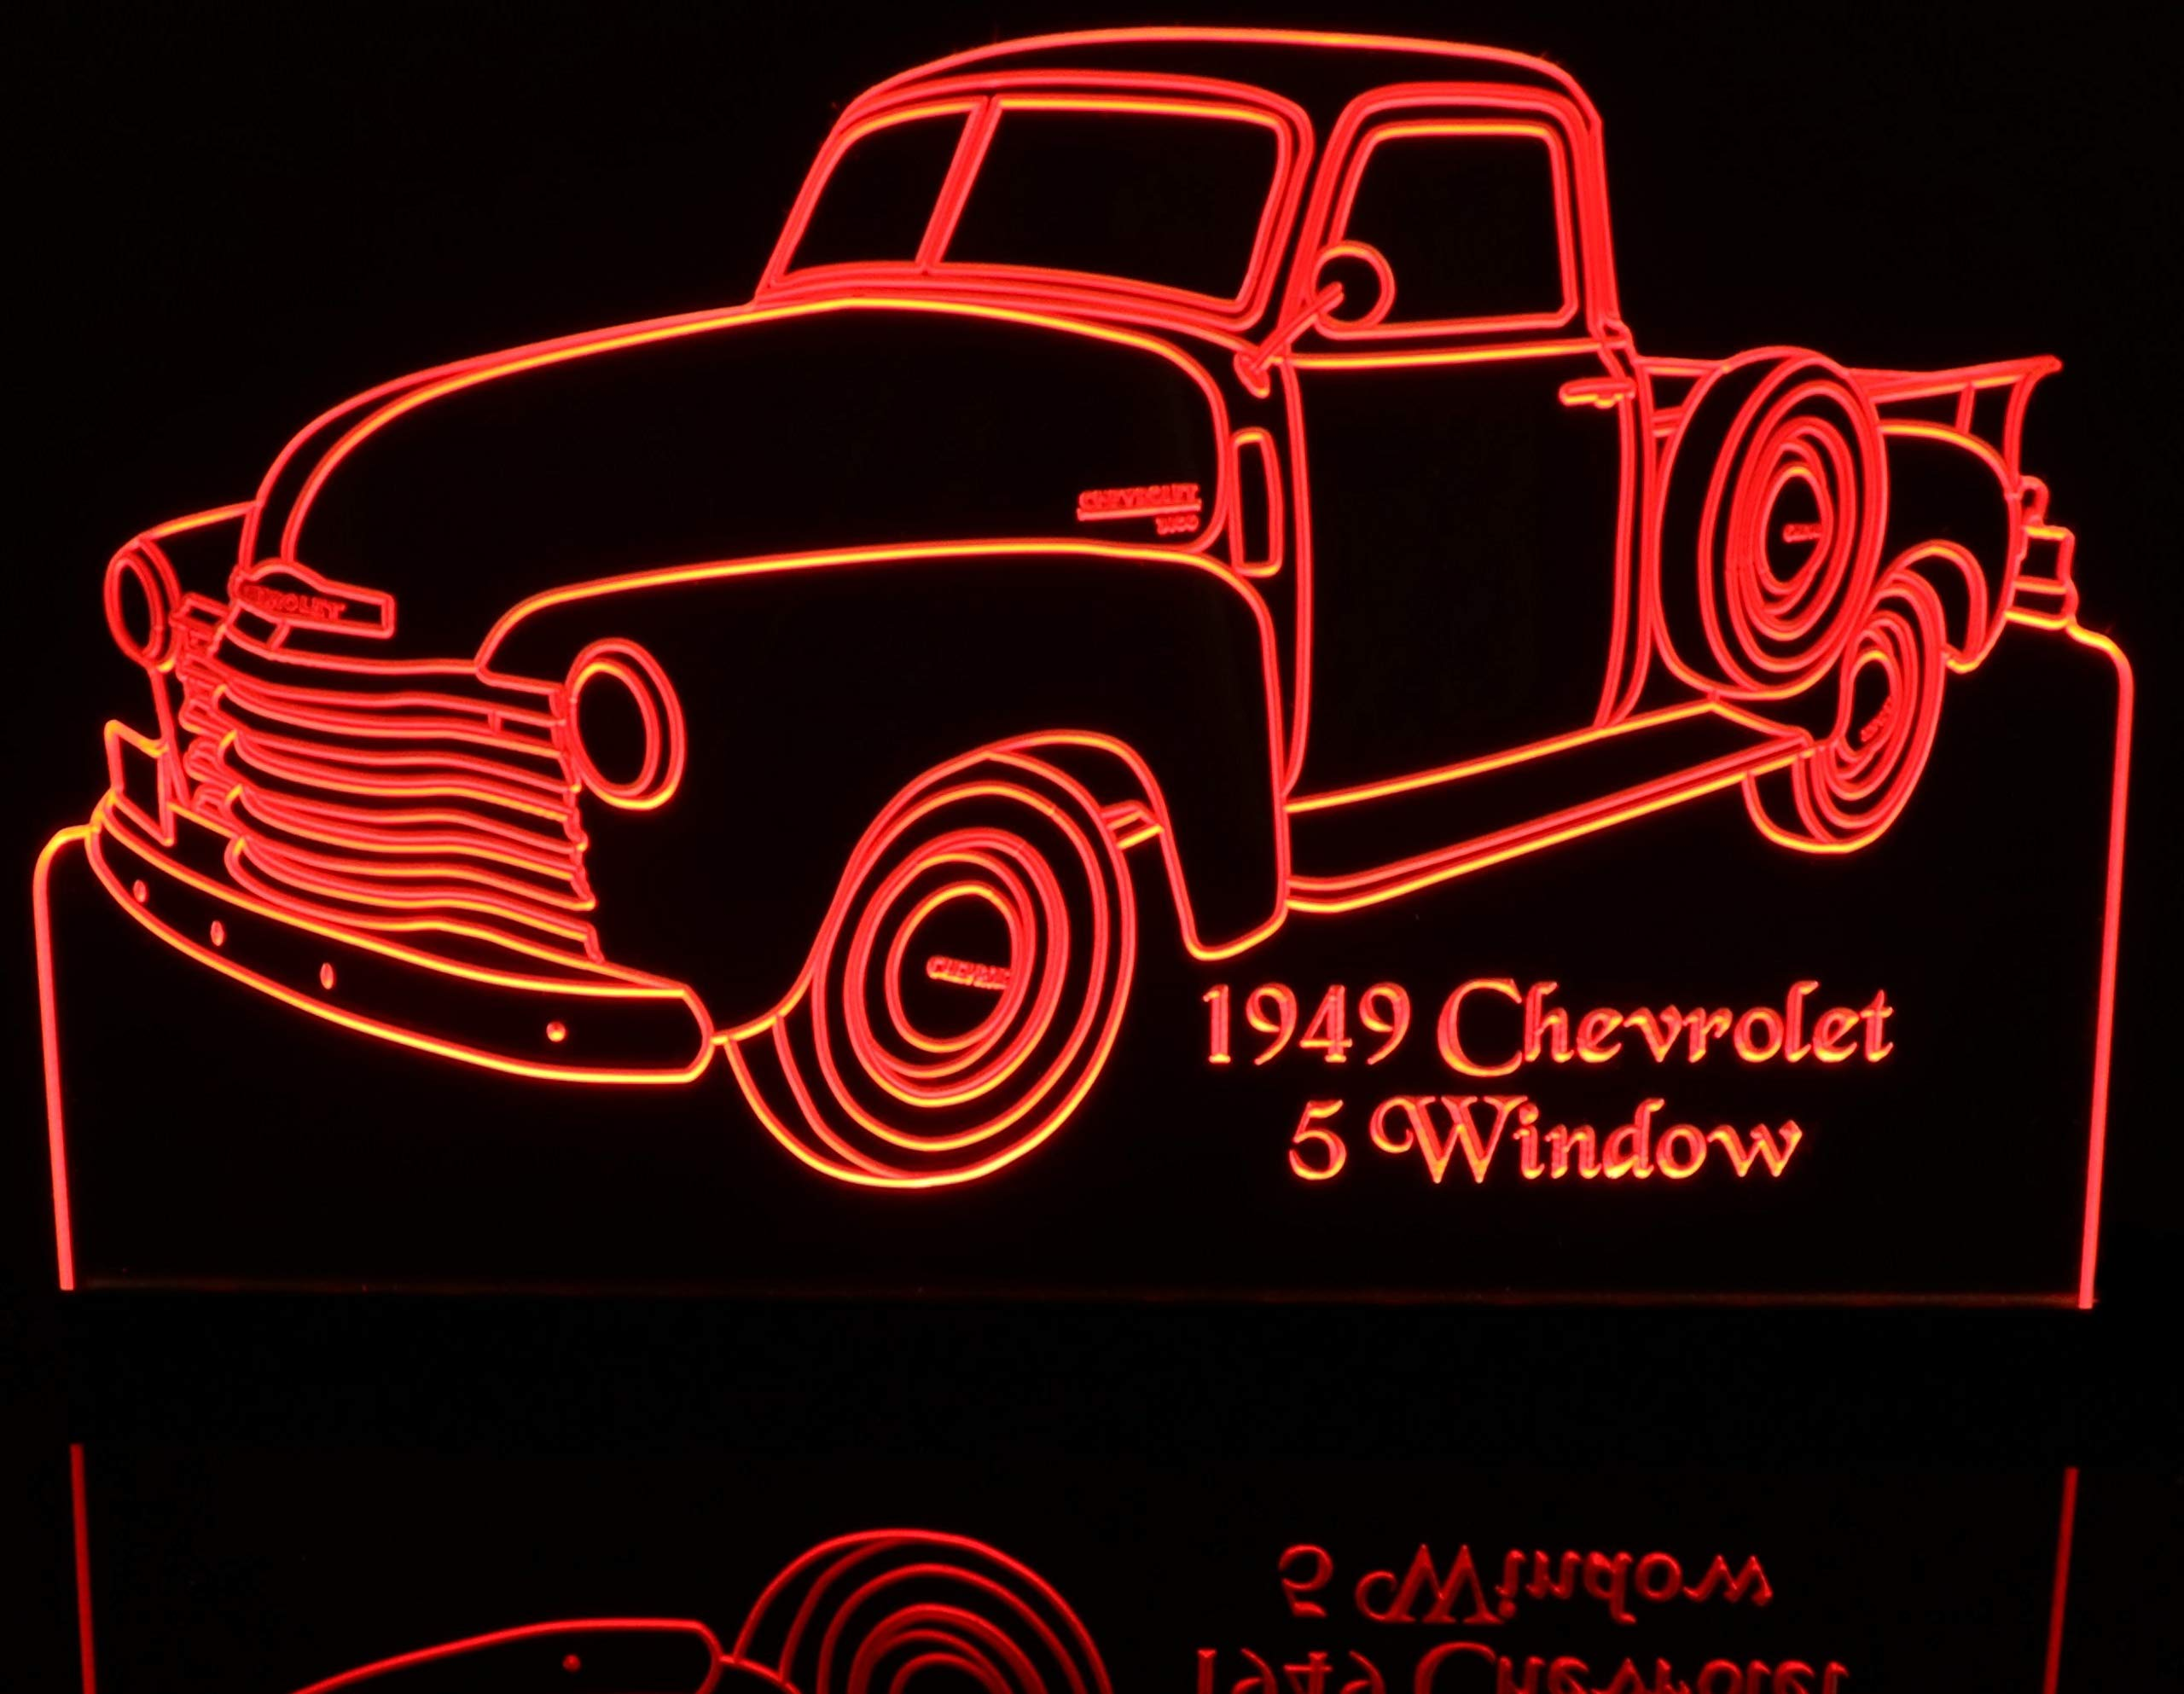 ValleyDesignsND 1949 Chevy Pickup Truck 5 Window with Spare 12'' Reflective Black Mirror Base 15 Led Acrylic Lighted Edge Lit LED Sign Light Up Plaque 49 VVD1 Made in The USA